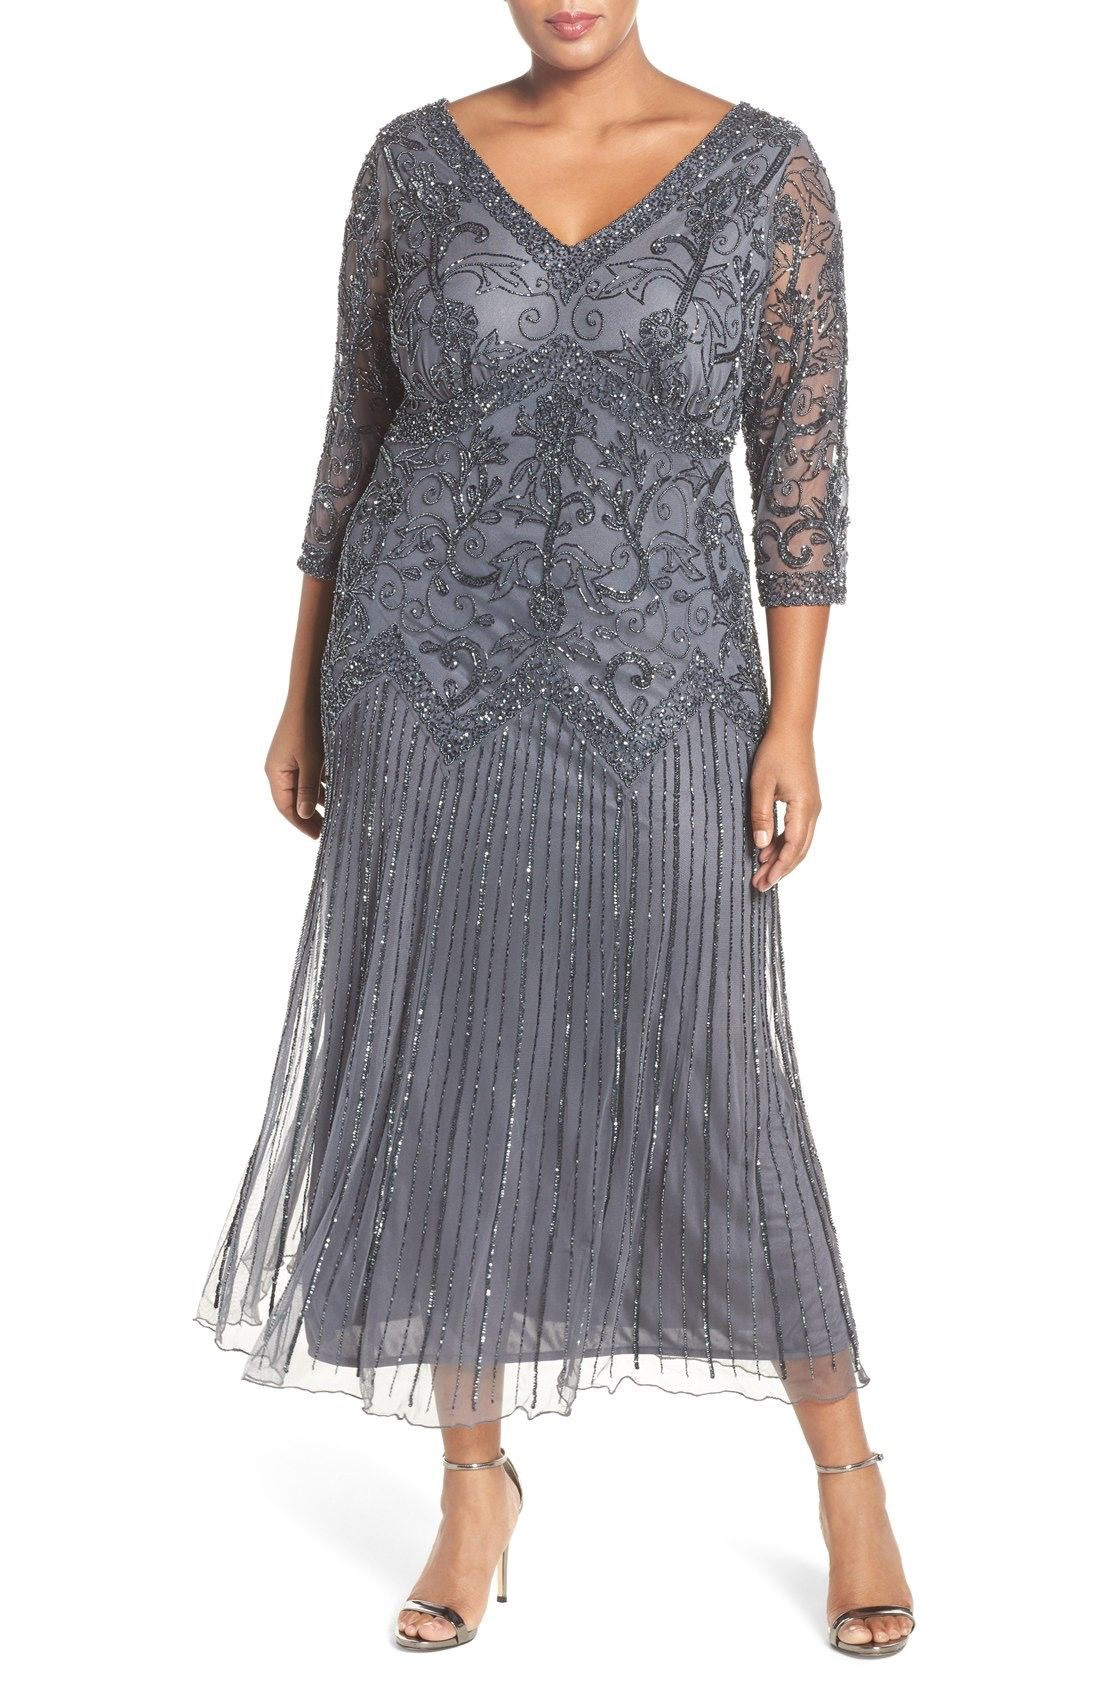 86f03c11522 Pisarro Nights Embellished Double V-Neck Midi Dress (Plus Size) available  at  Nordstrom